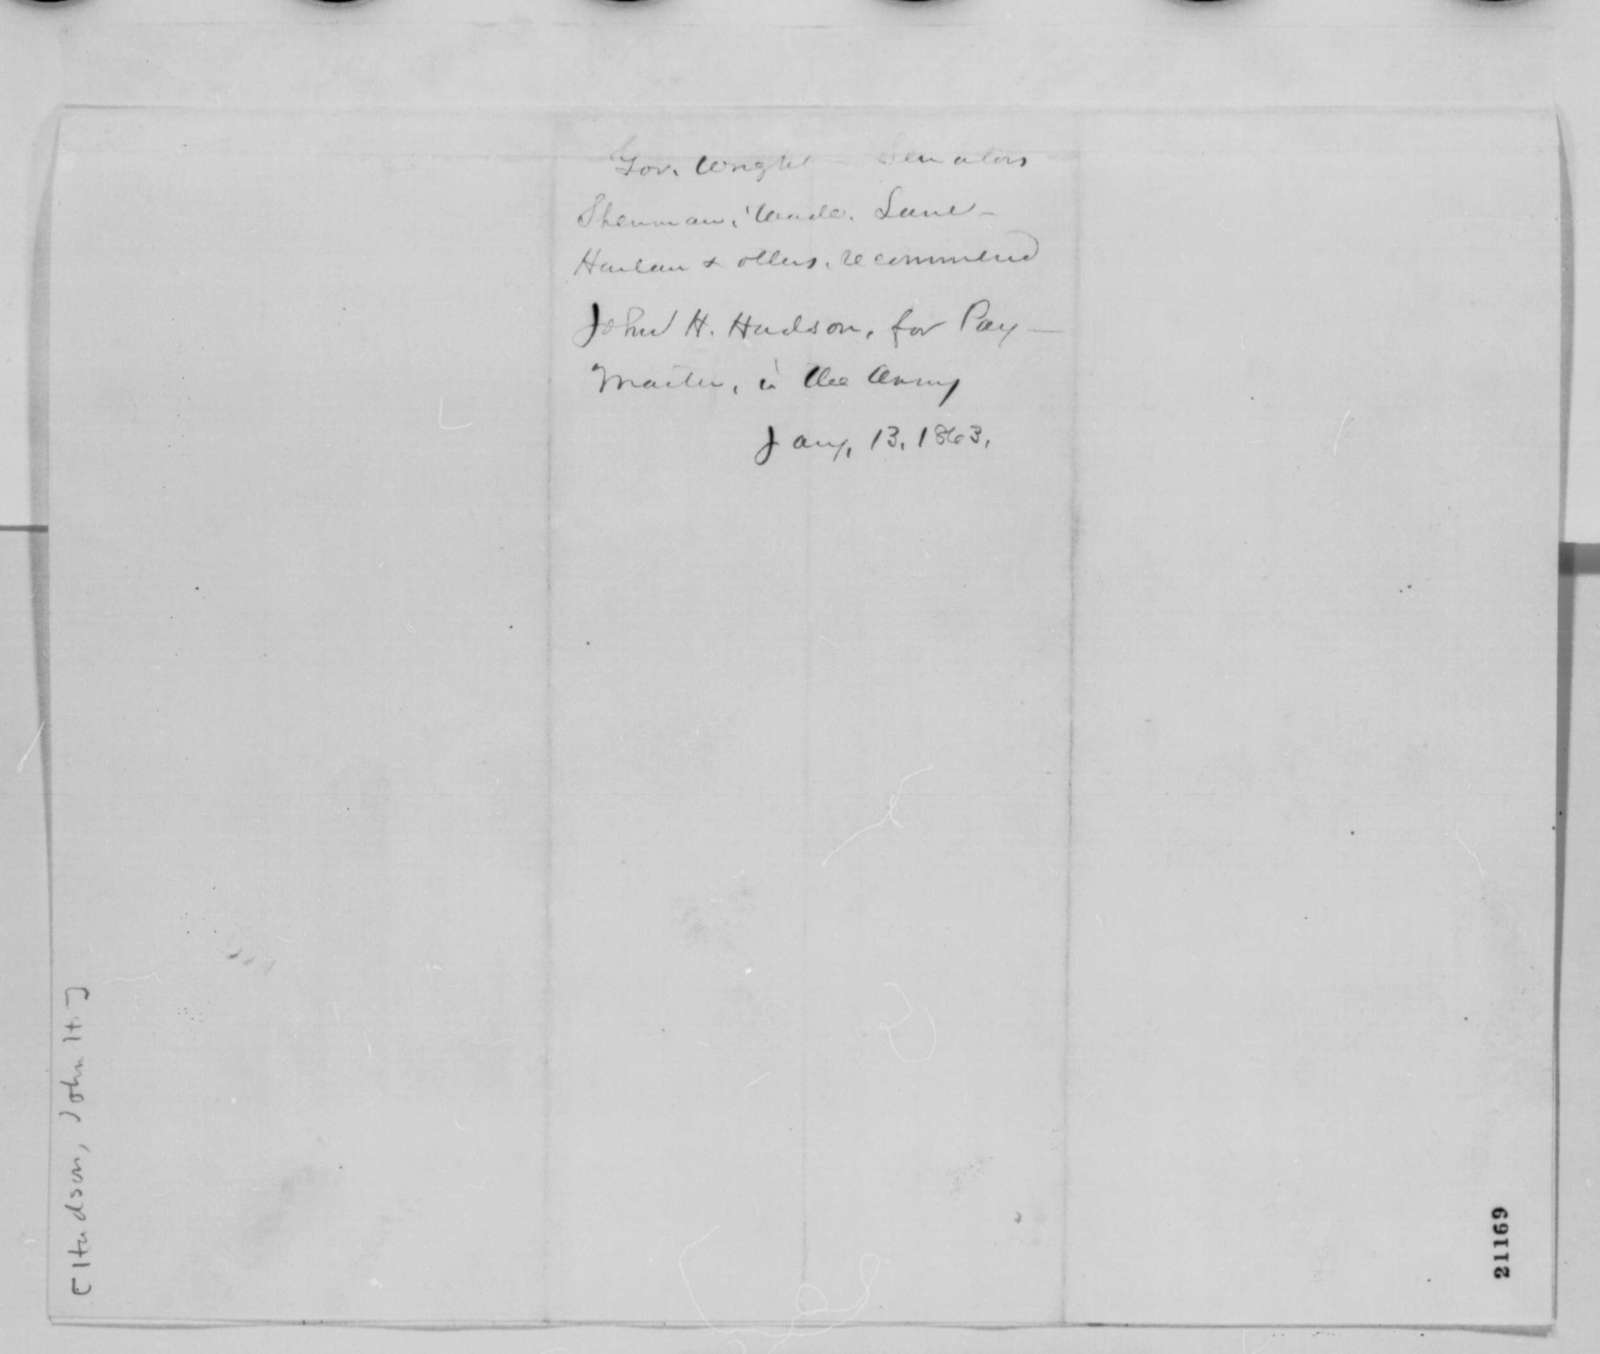 Joseph A. Wright, et al. to Abraham Lincoln, Tuesday, January 13, 1863  (Petition recommending John Hudson for paymaster)